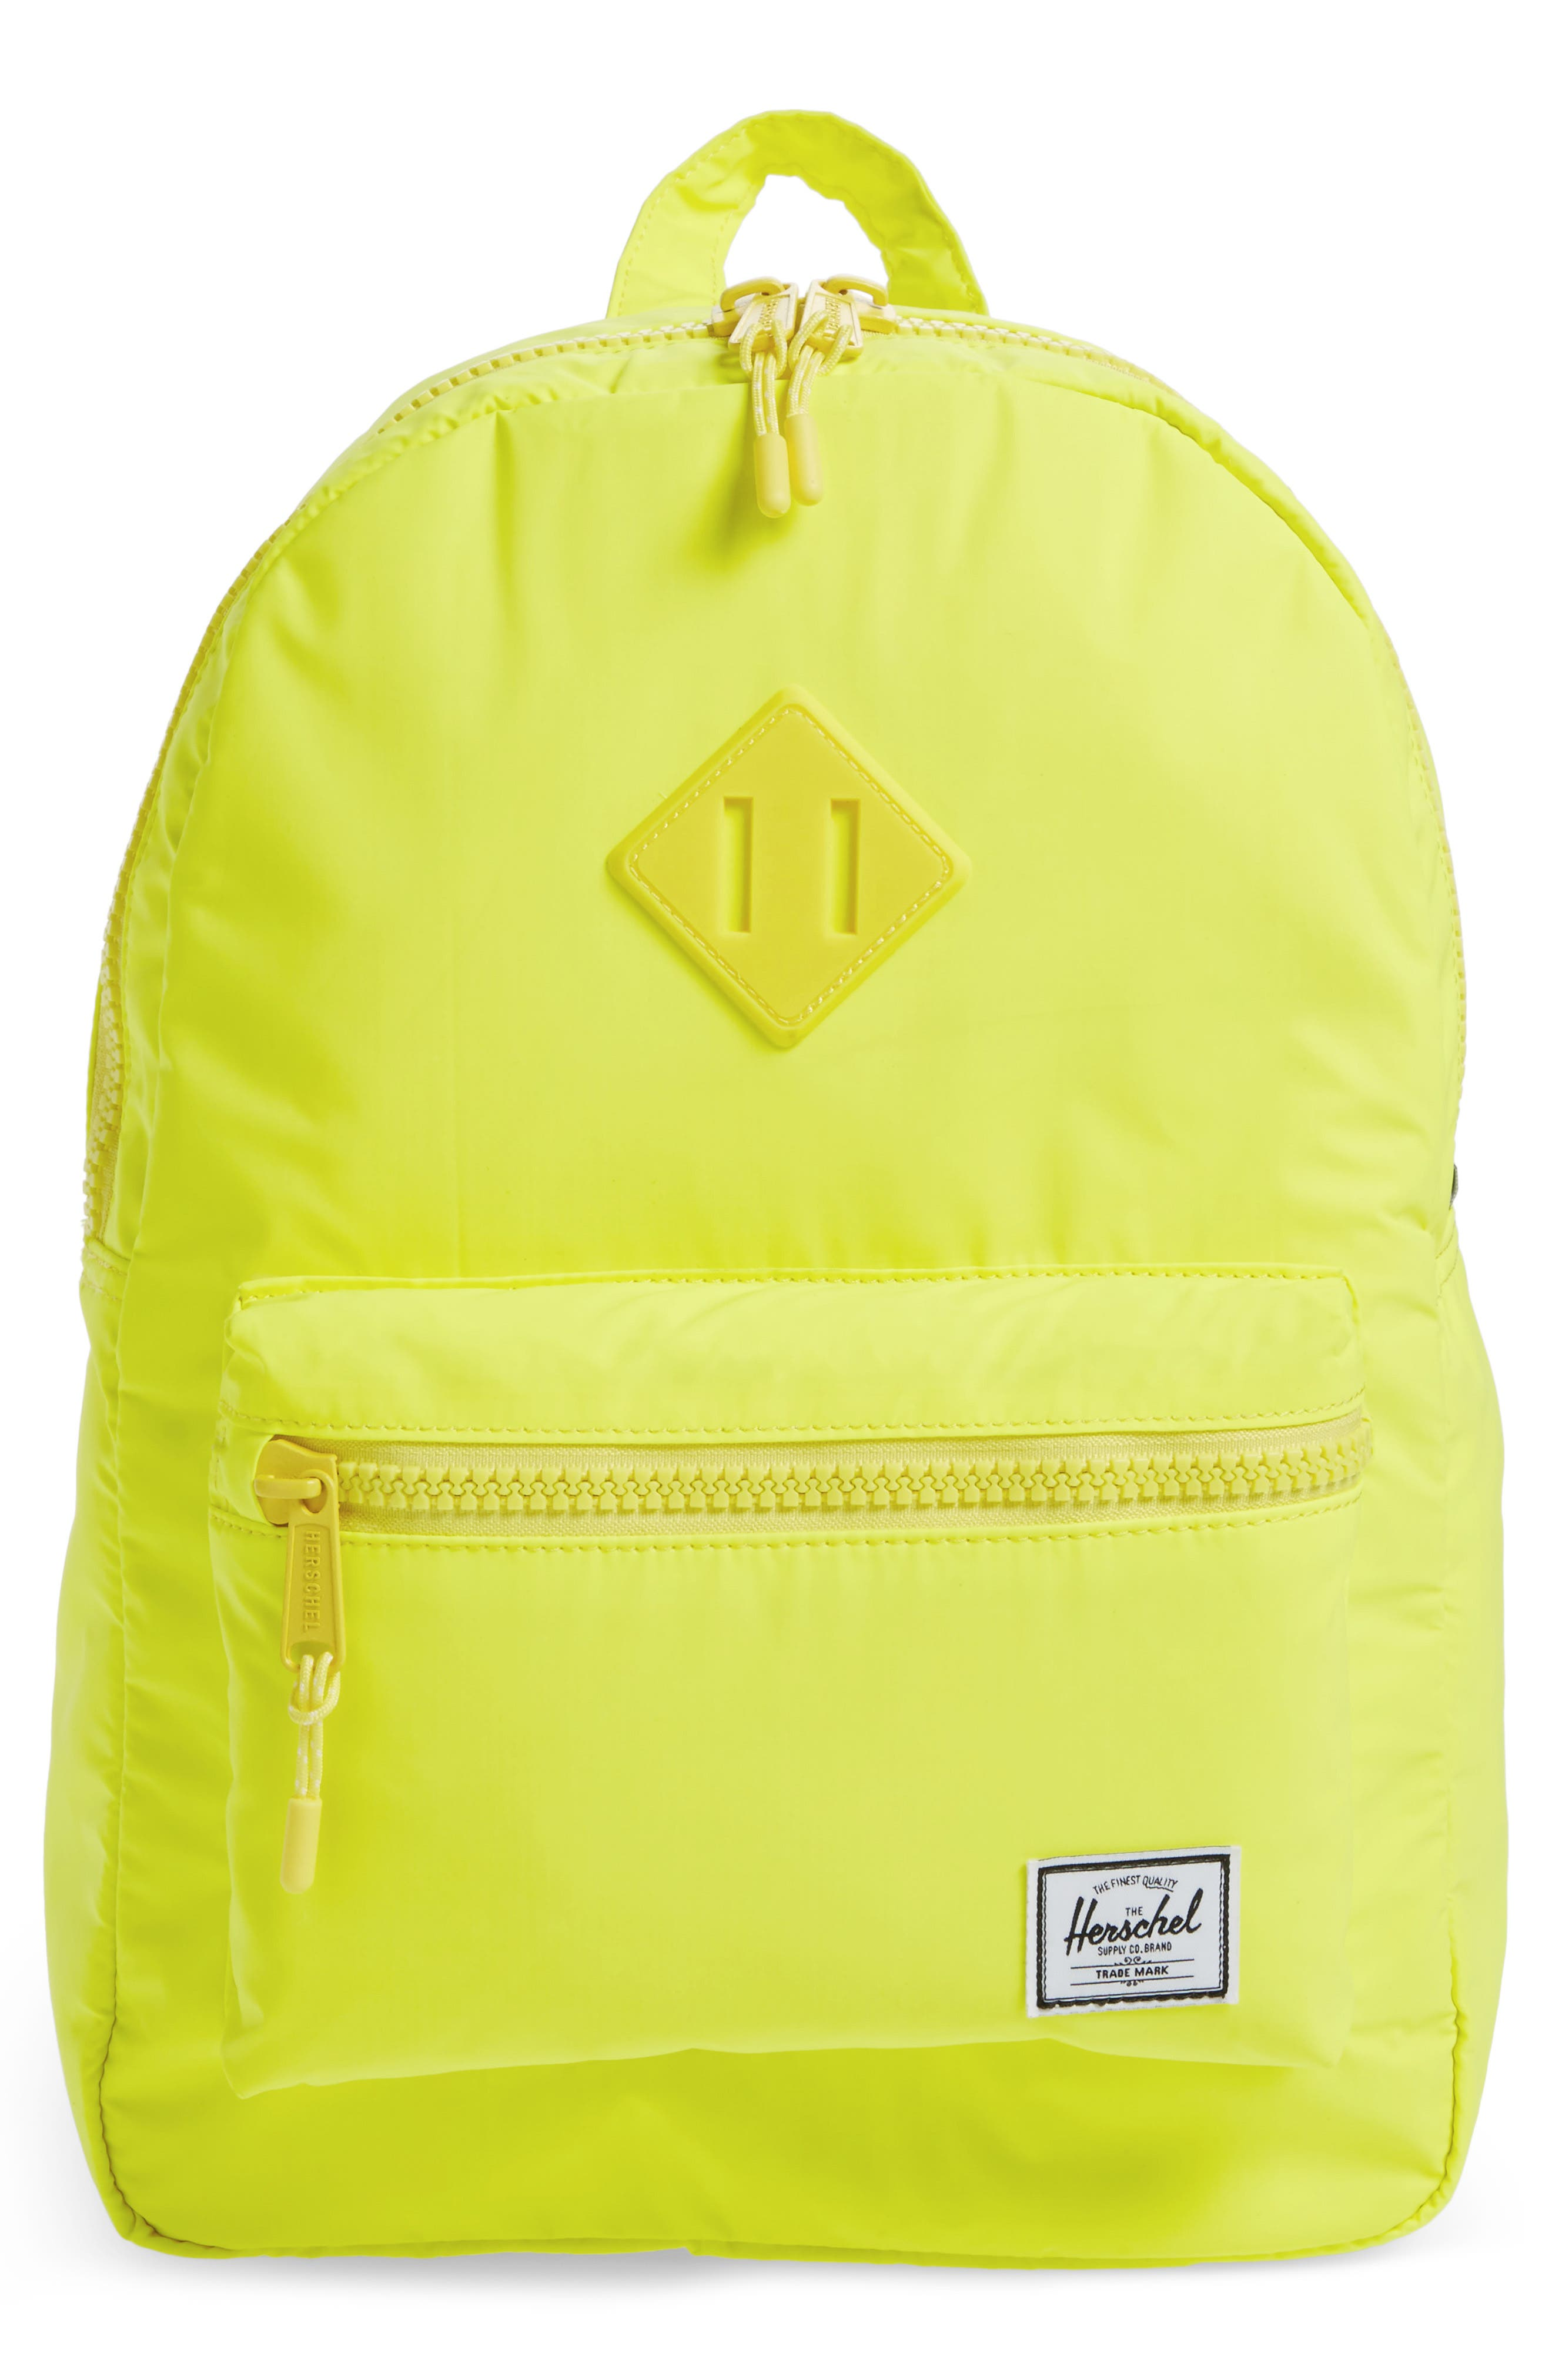 Heritage Backpack,                         Main,                         color, Neon Yellow Reflective Rubber